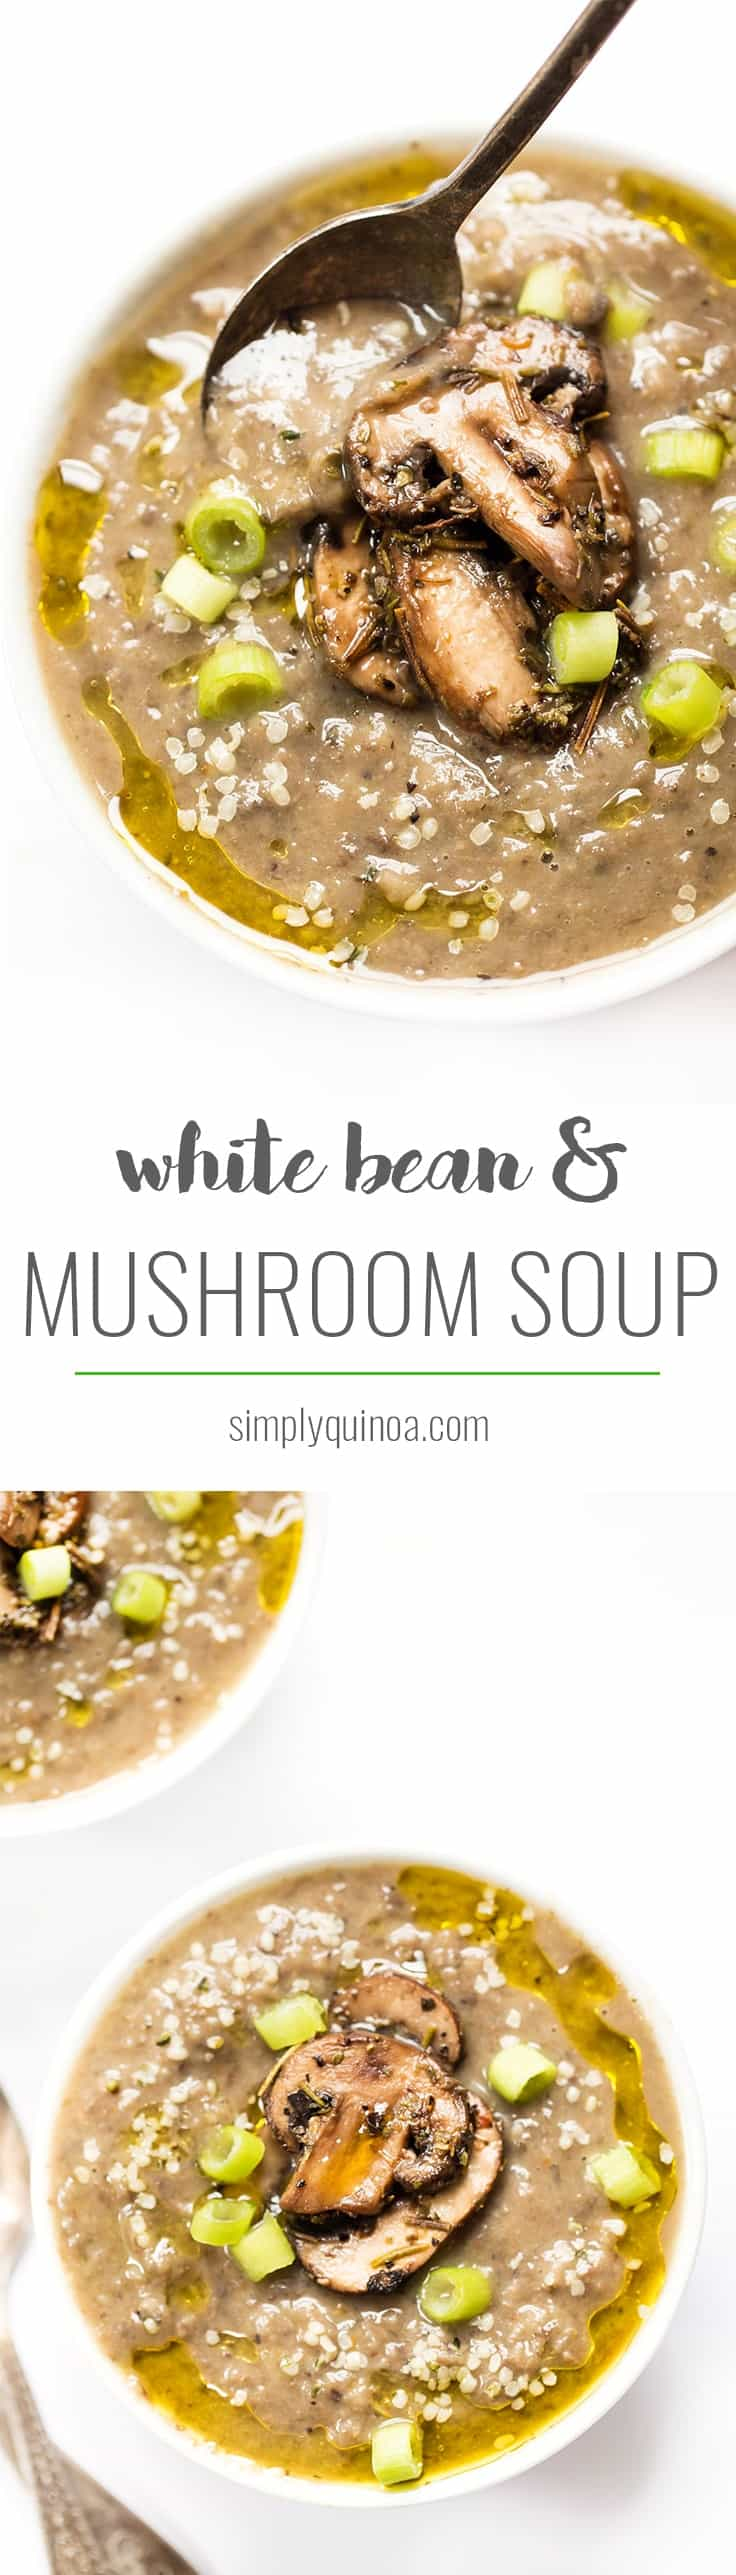 This CREAMY White Bean & Mushroom Soup is super easy to make, healthy and hearty! [vegan]